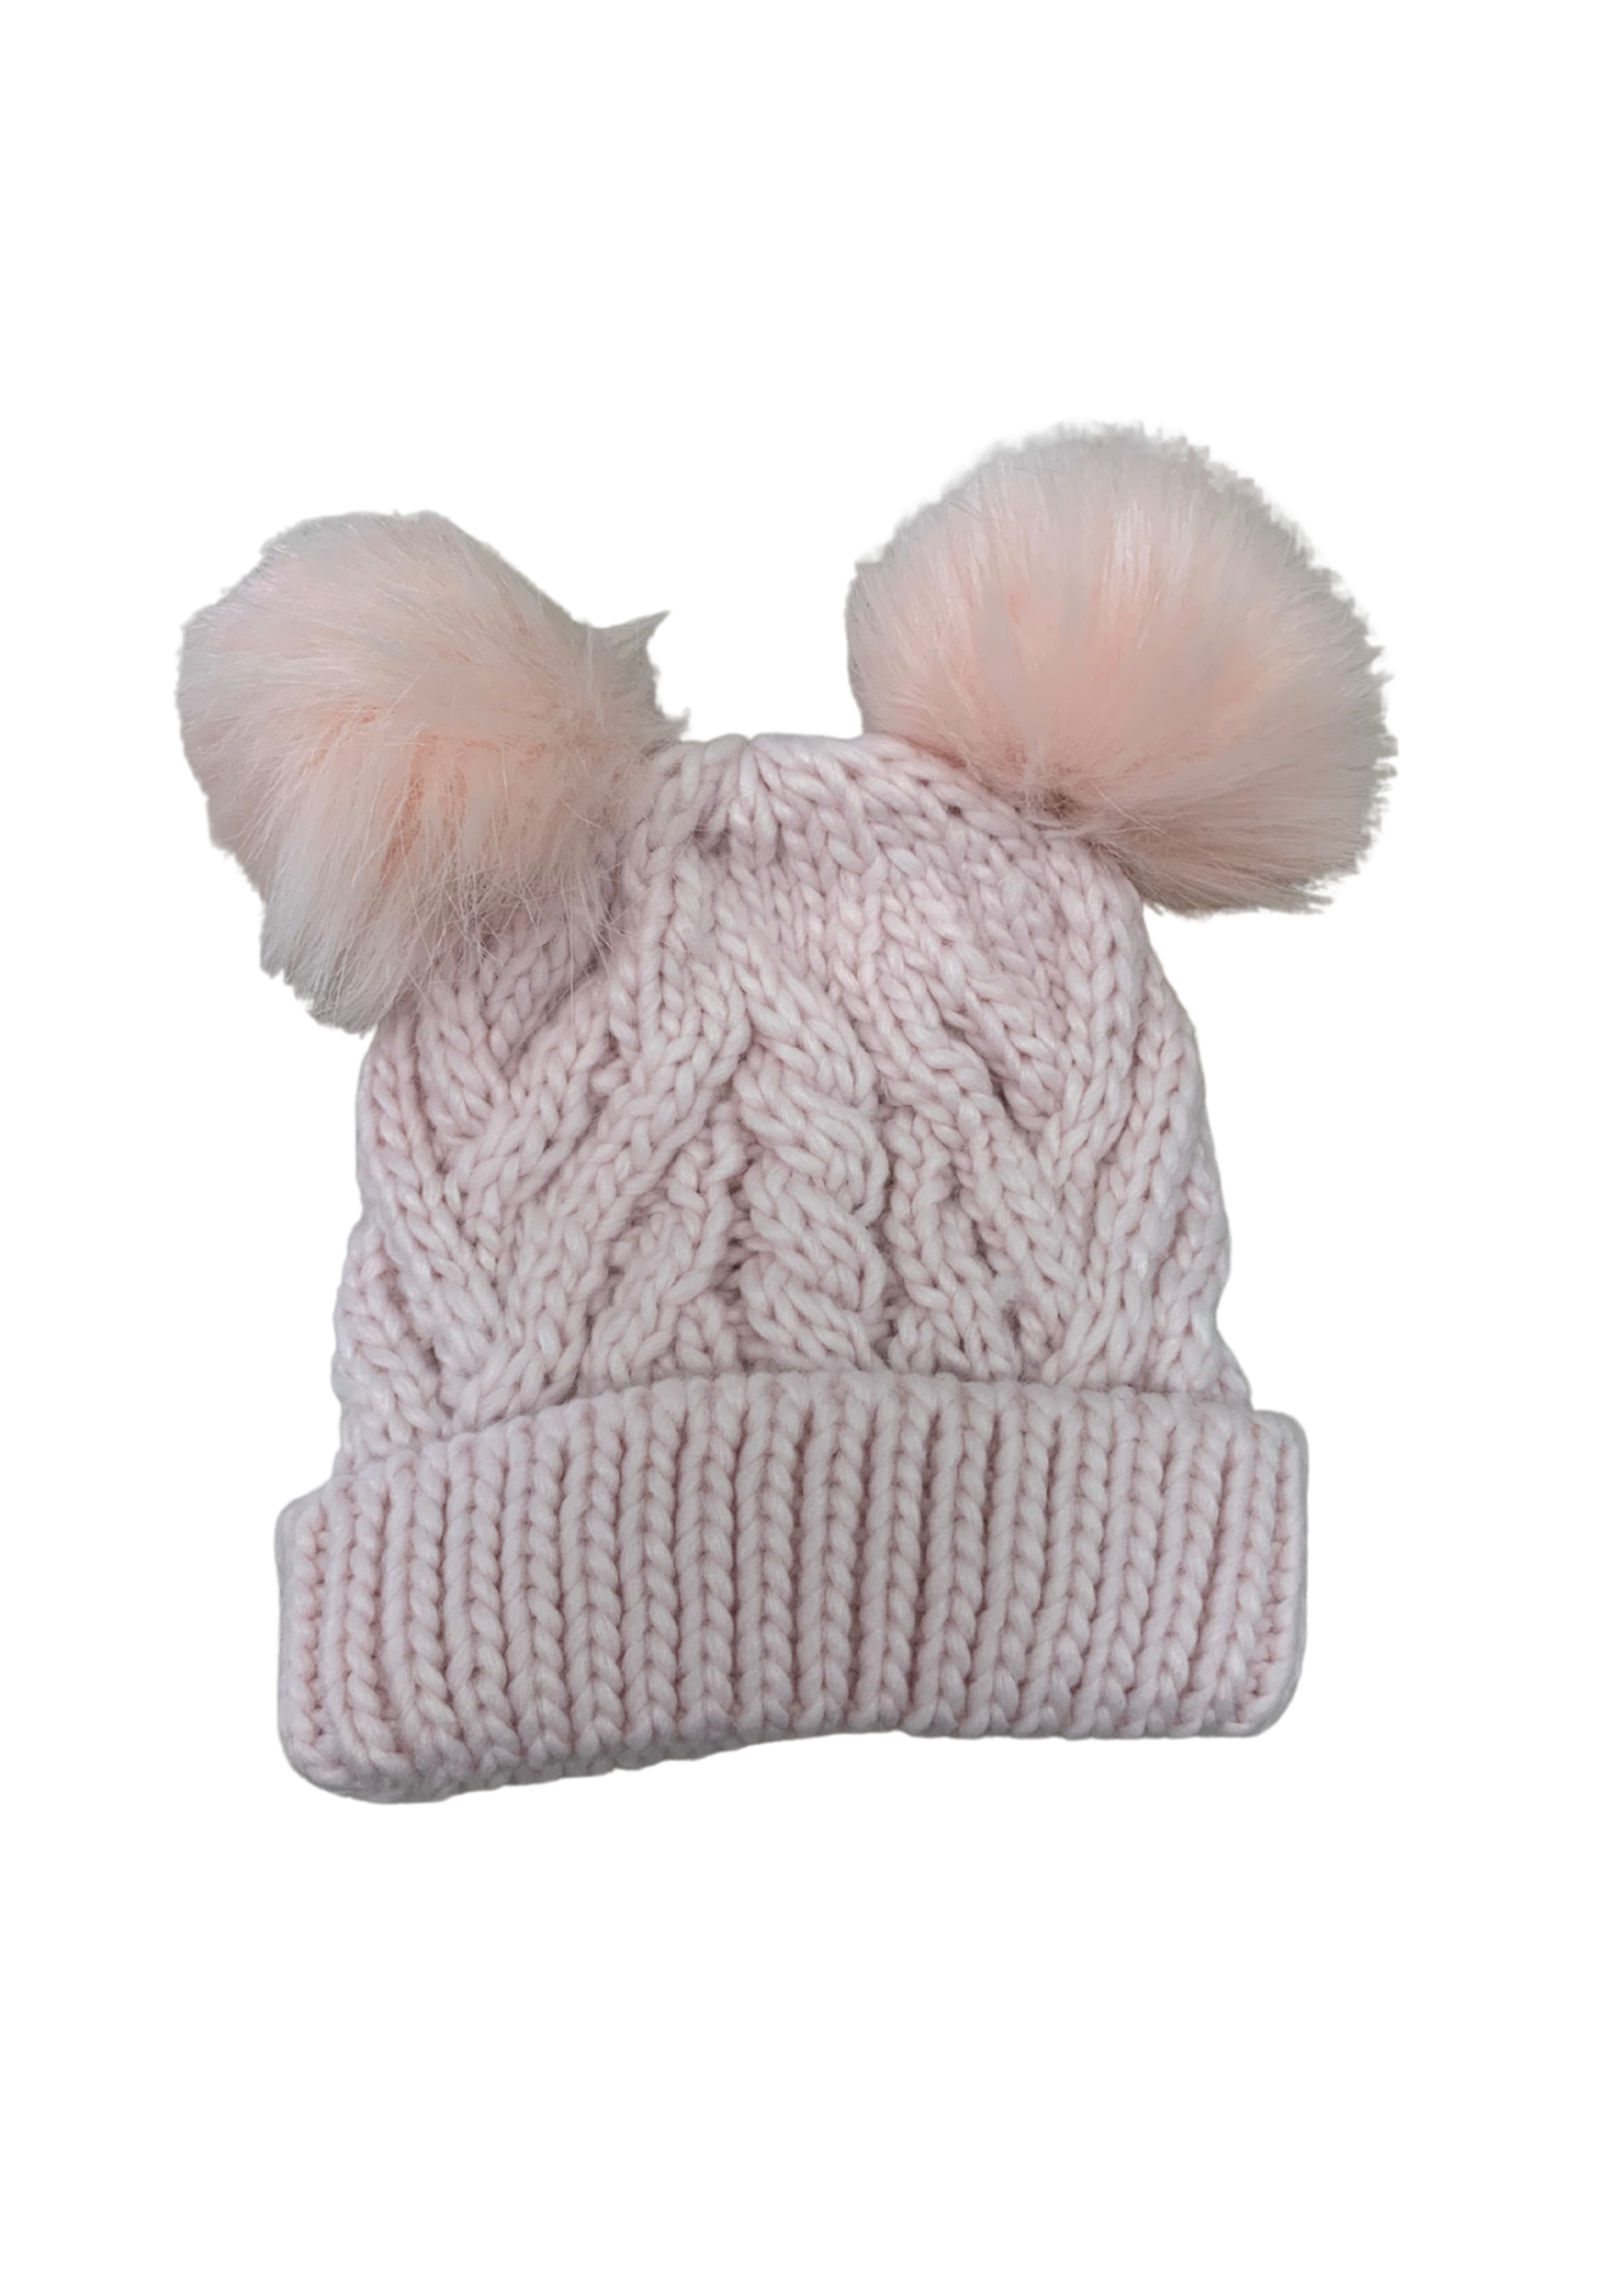 Huggalugs Fluffer Blush Pink Cable W/ 2 Pom Poms